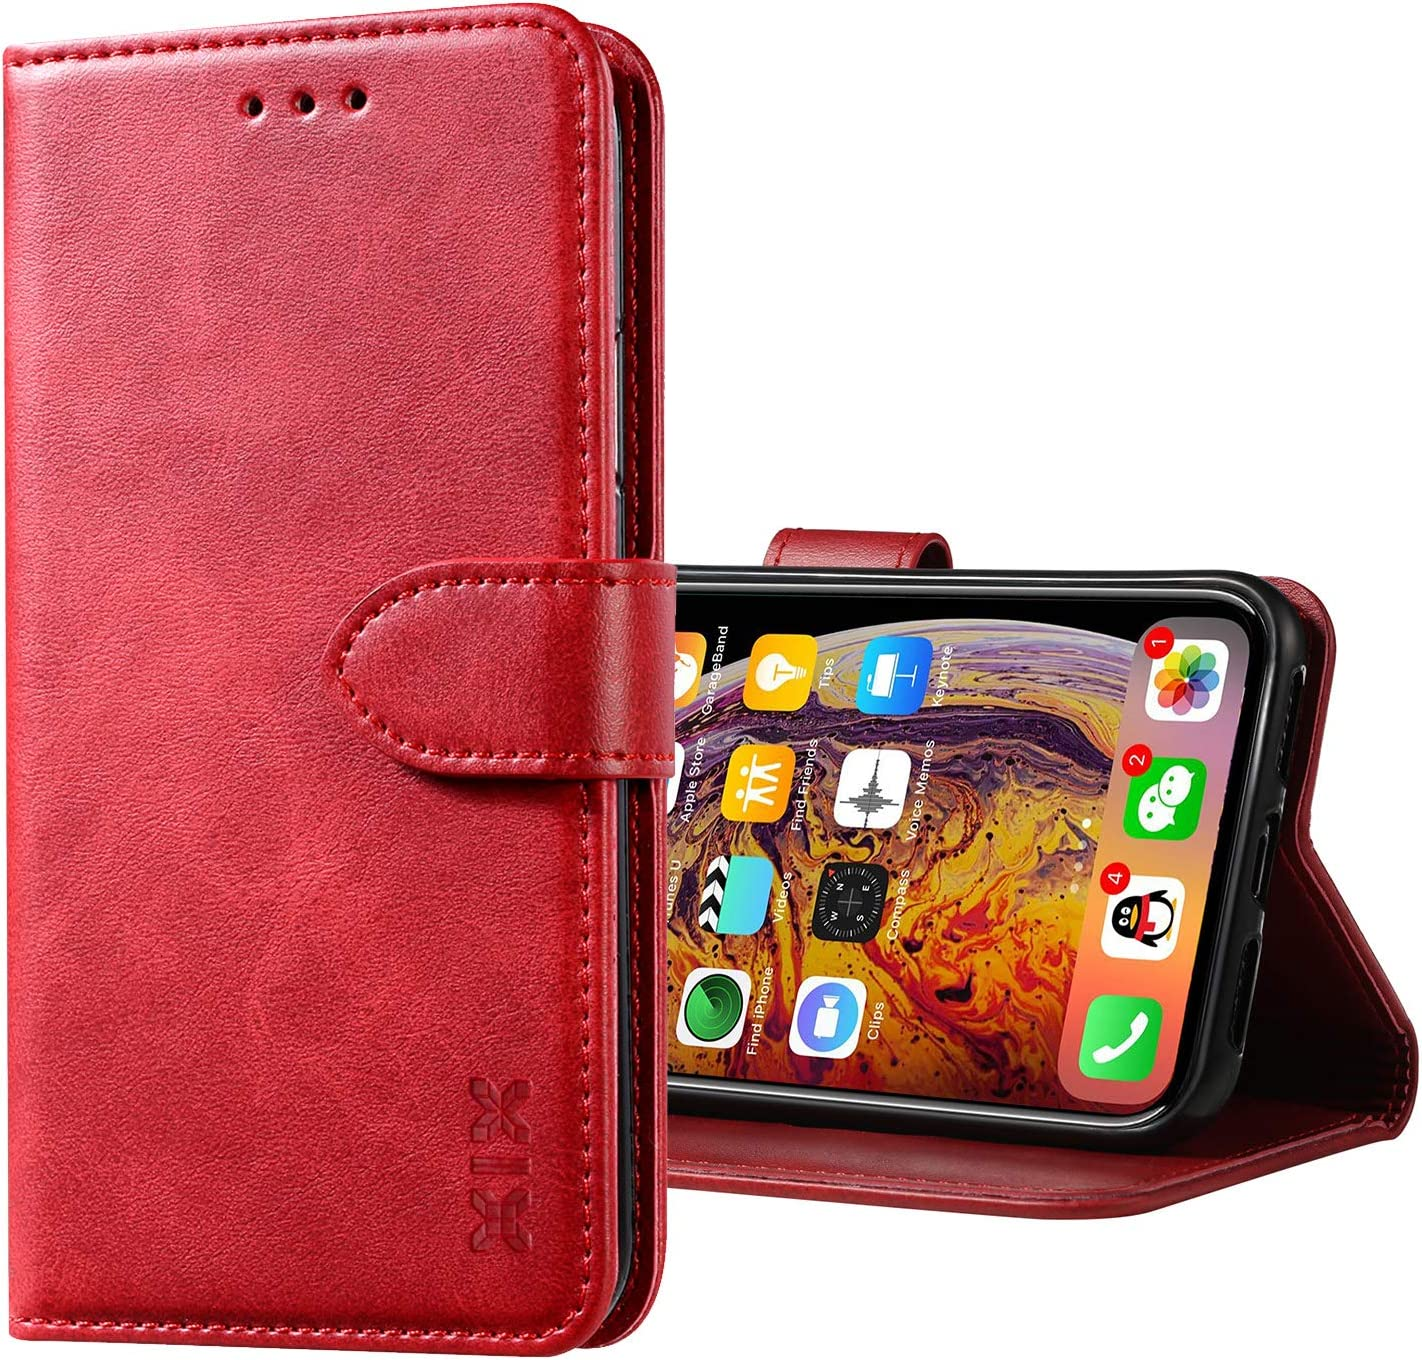 XIX iPhone Xs Max Case Premium Genuine Leather Flip Folio Cover with Kickstand and Wallet Credit Slots for Apple iPhone Xs Max (Red,iPhone Xs Max)